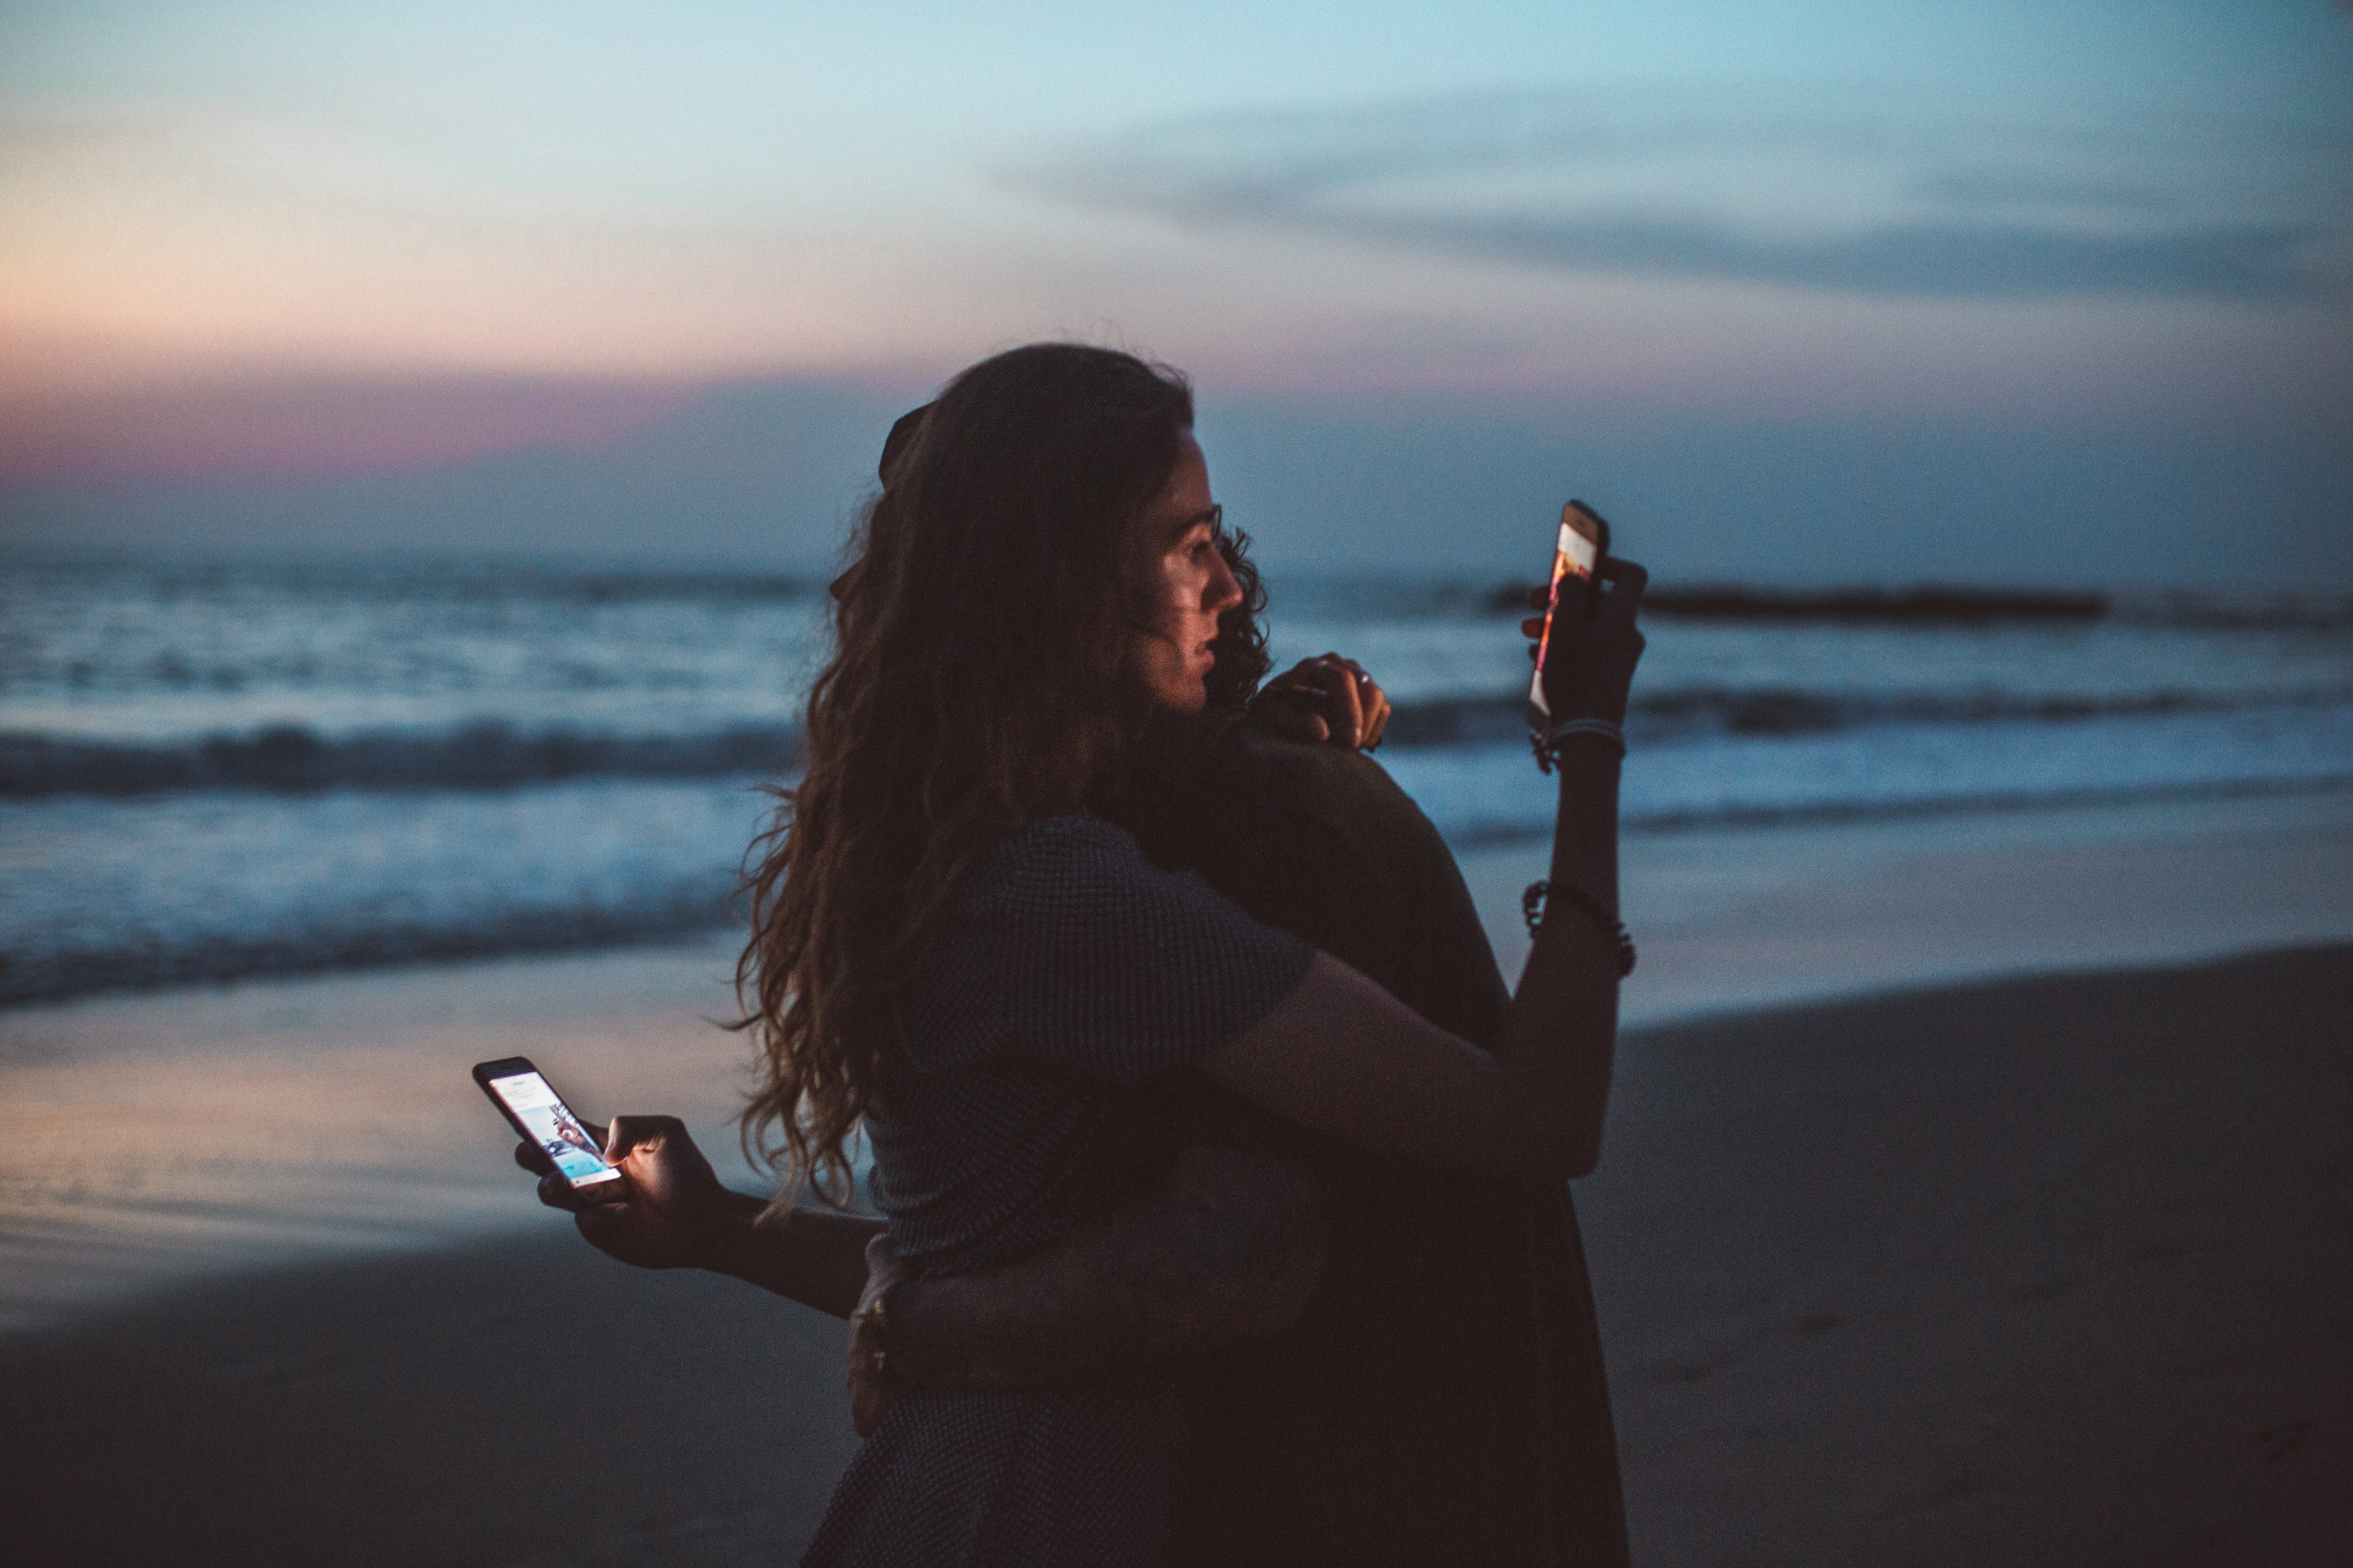 a couple embracing while both looking at their phones behind the other's back